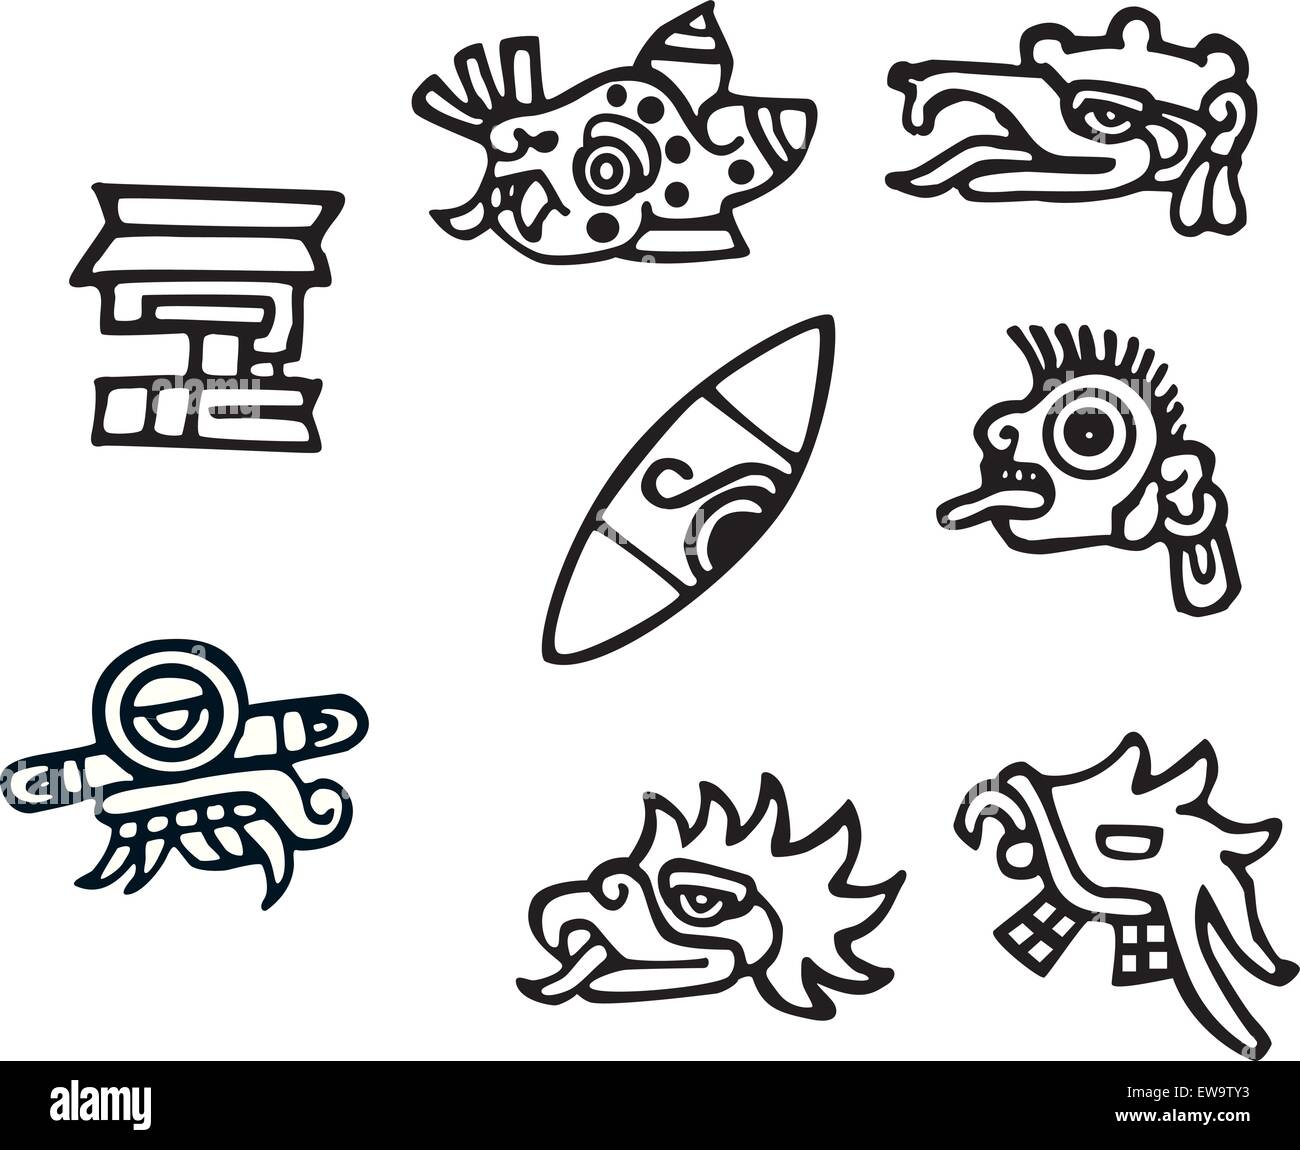 Mayan symbol tattoo images for tatouage mayan symbol tattoo in mayan symbols great artwork for tattoos stock vector art biocorpaavc